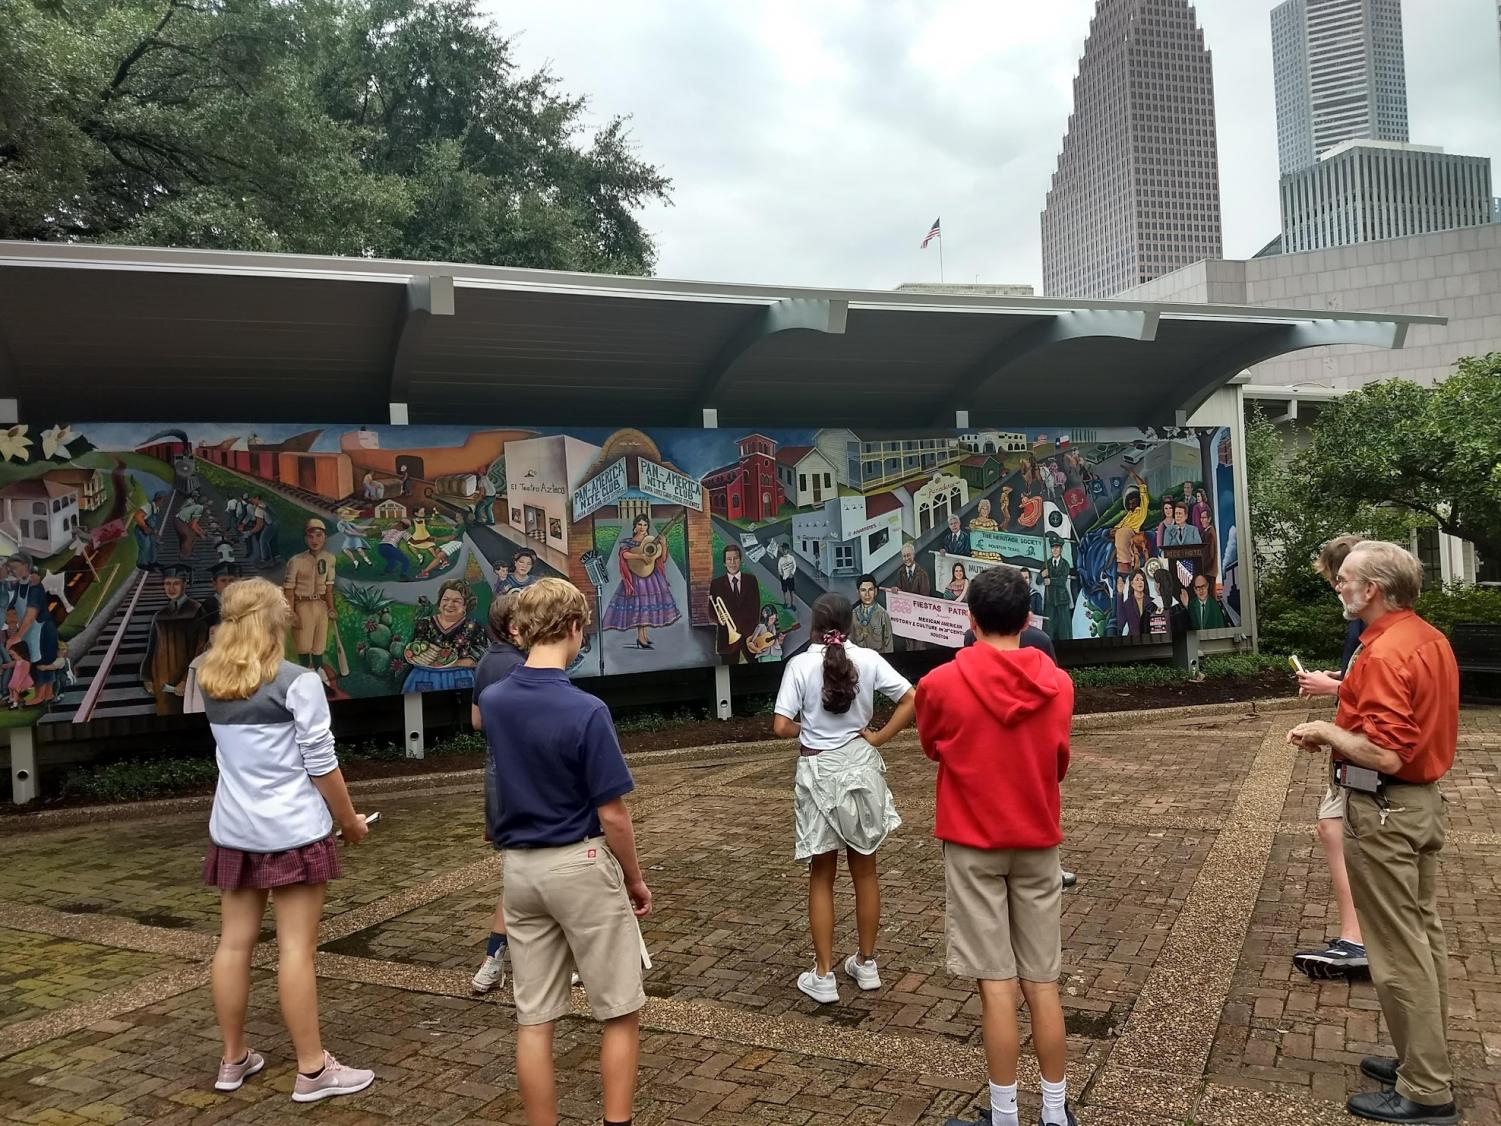 Havel+and+his+class+examine+a+mural+in+Sam+Houston+Park.